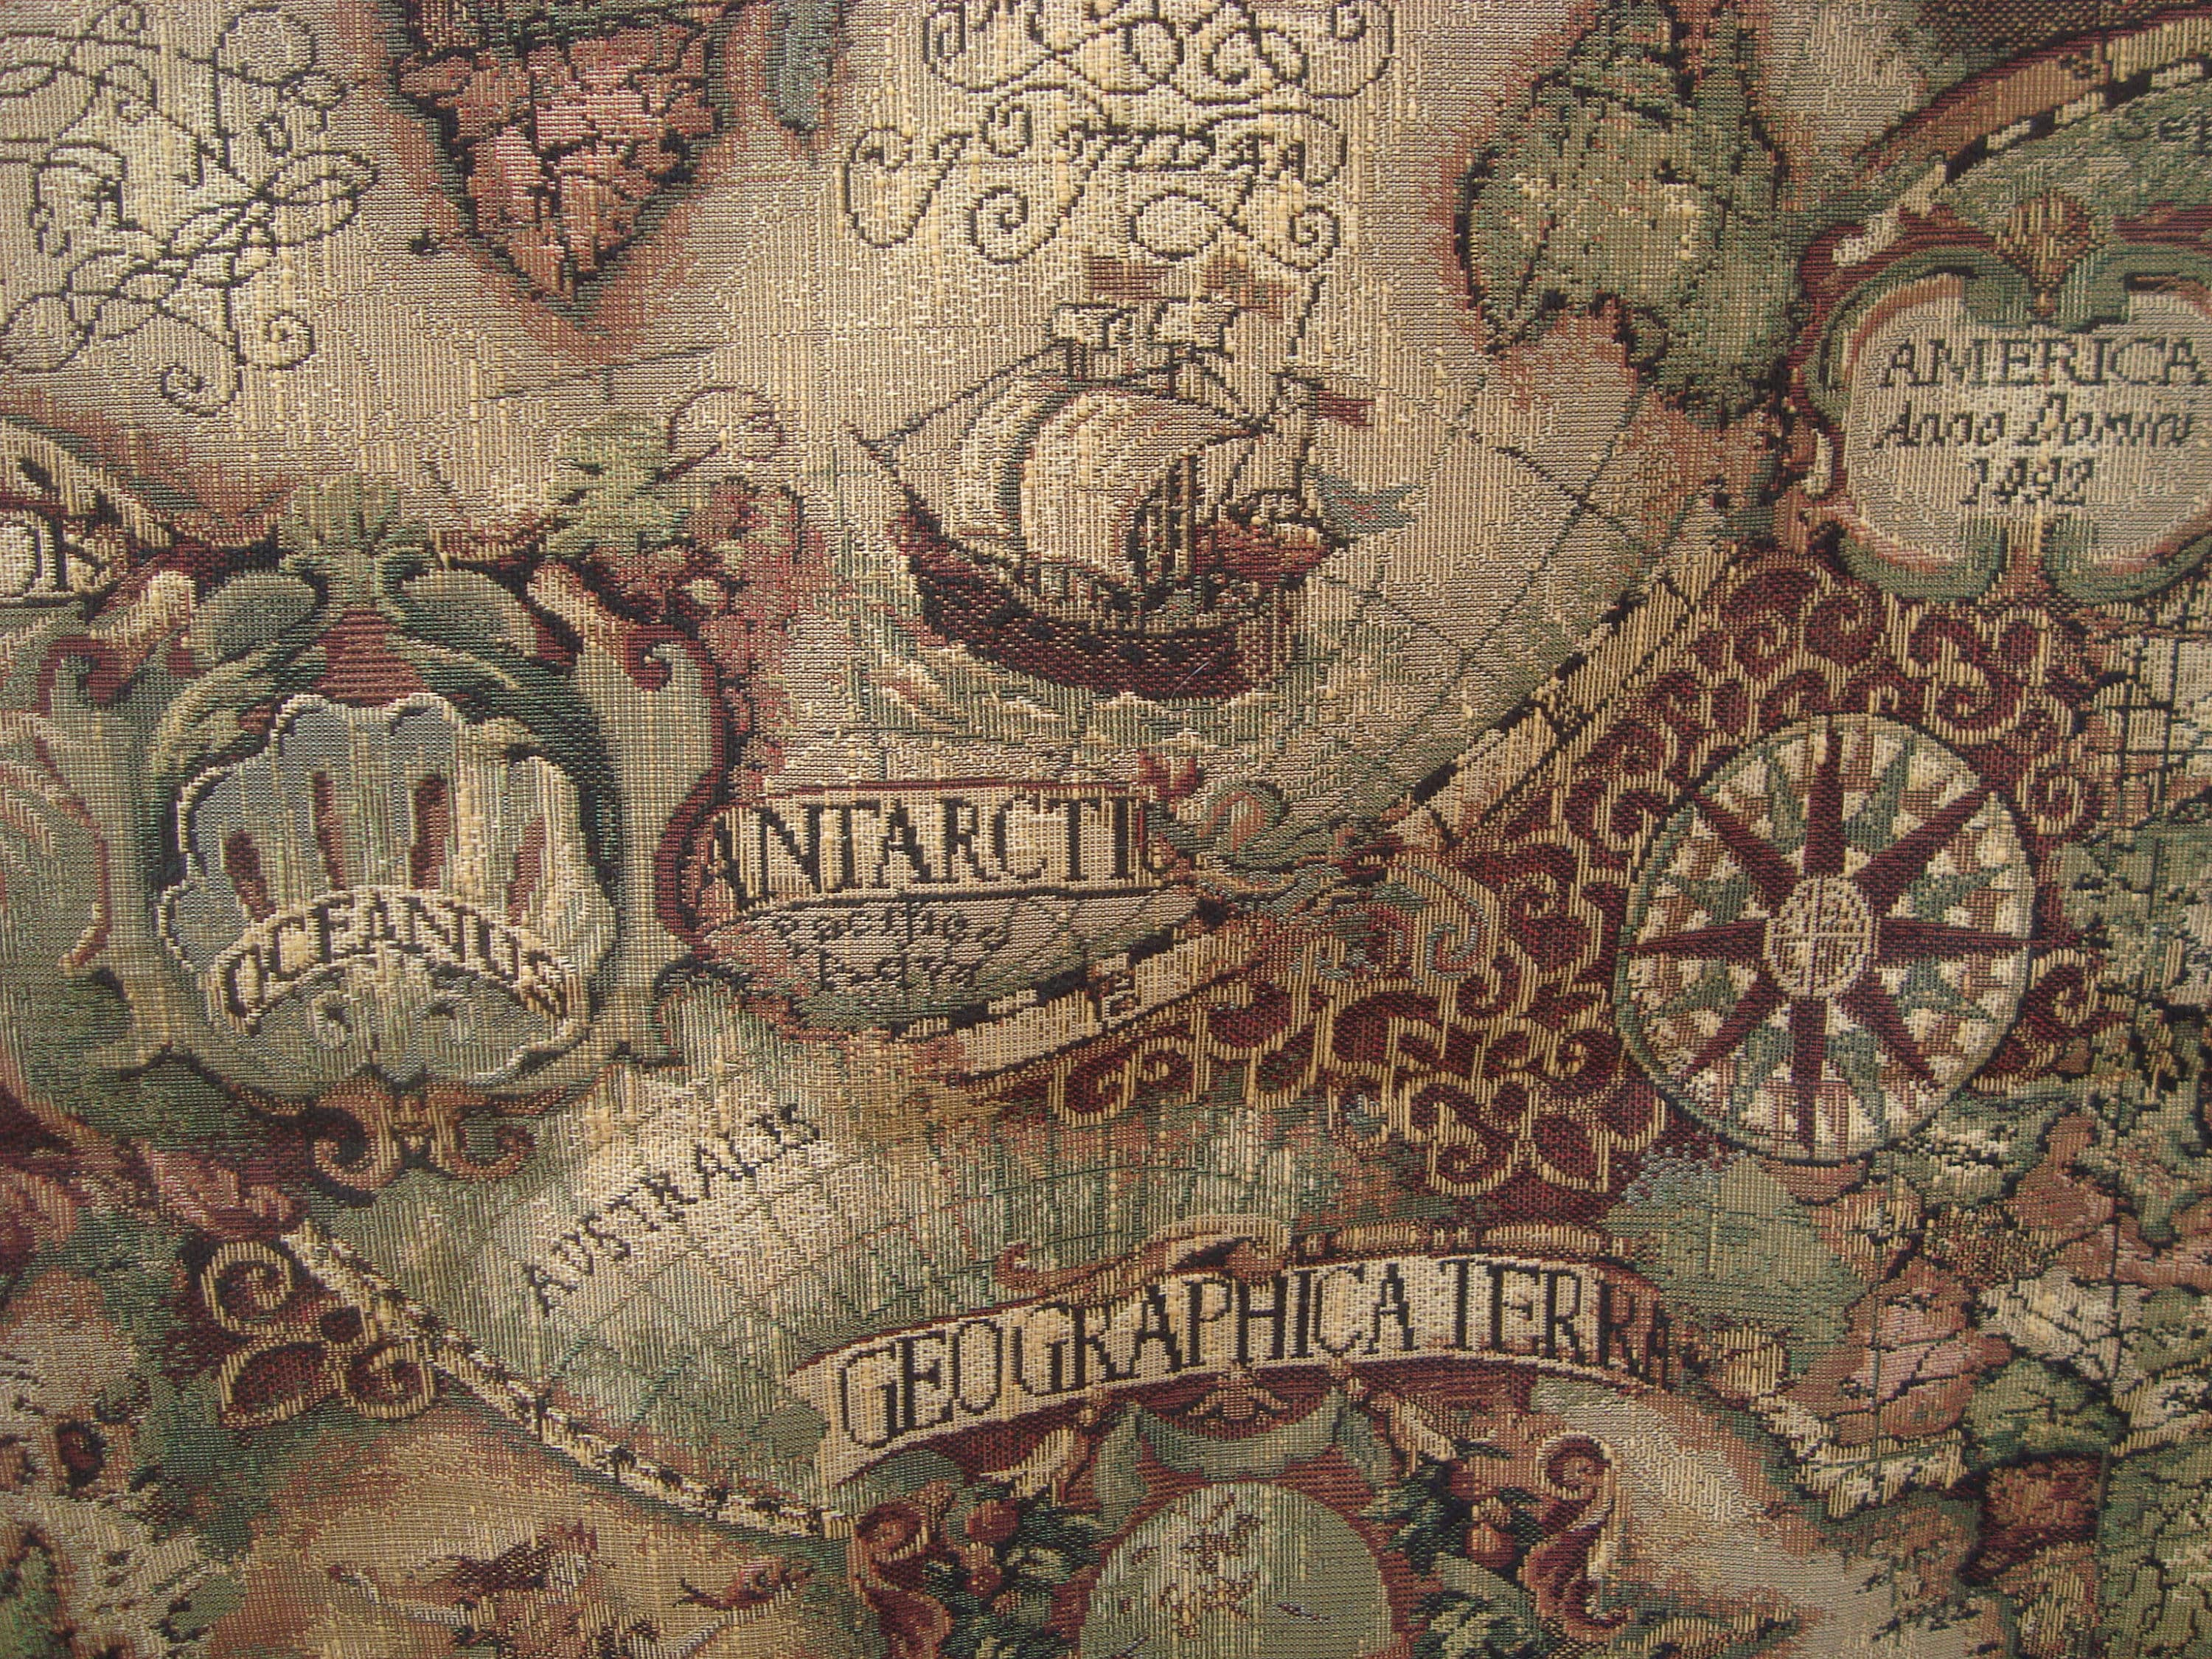 Vintage old world map tapestry fabric 15 yards x 48 wide from vintage old world map tapestry fabric 15 yards x 48 wide sold by sofiascobwebmuseum gumiabroncs Images